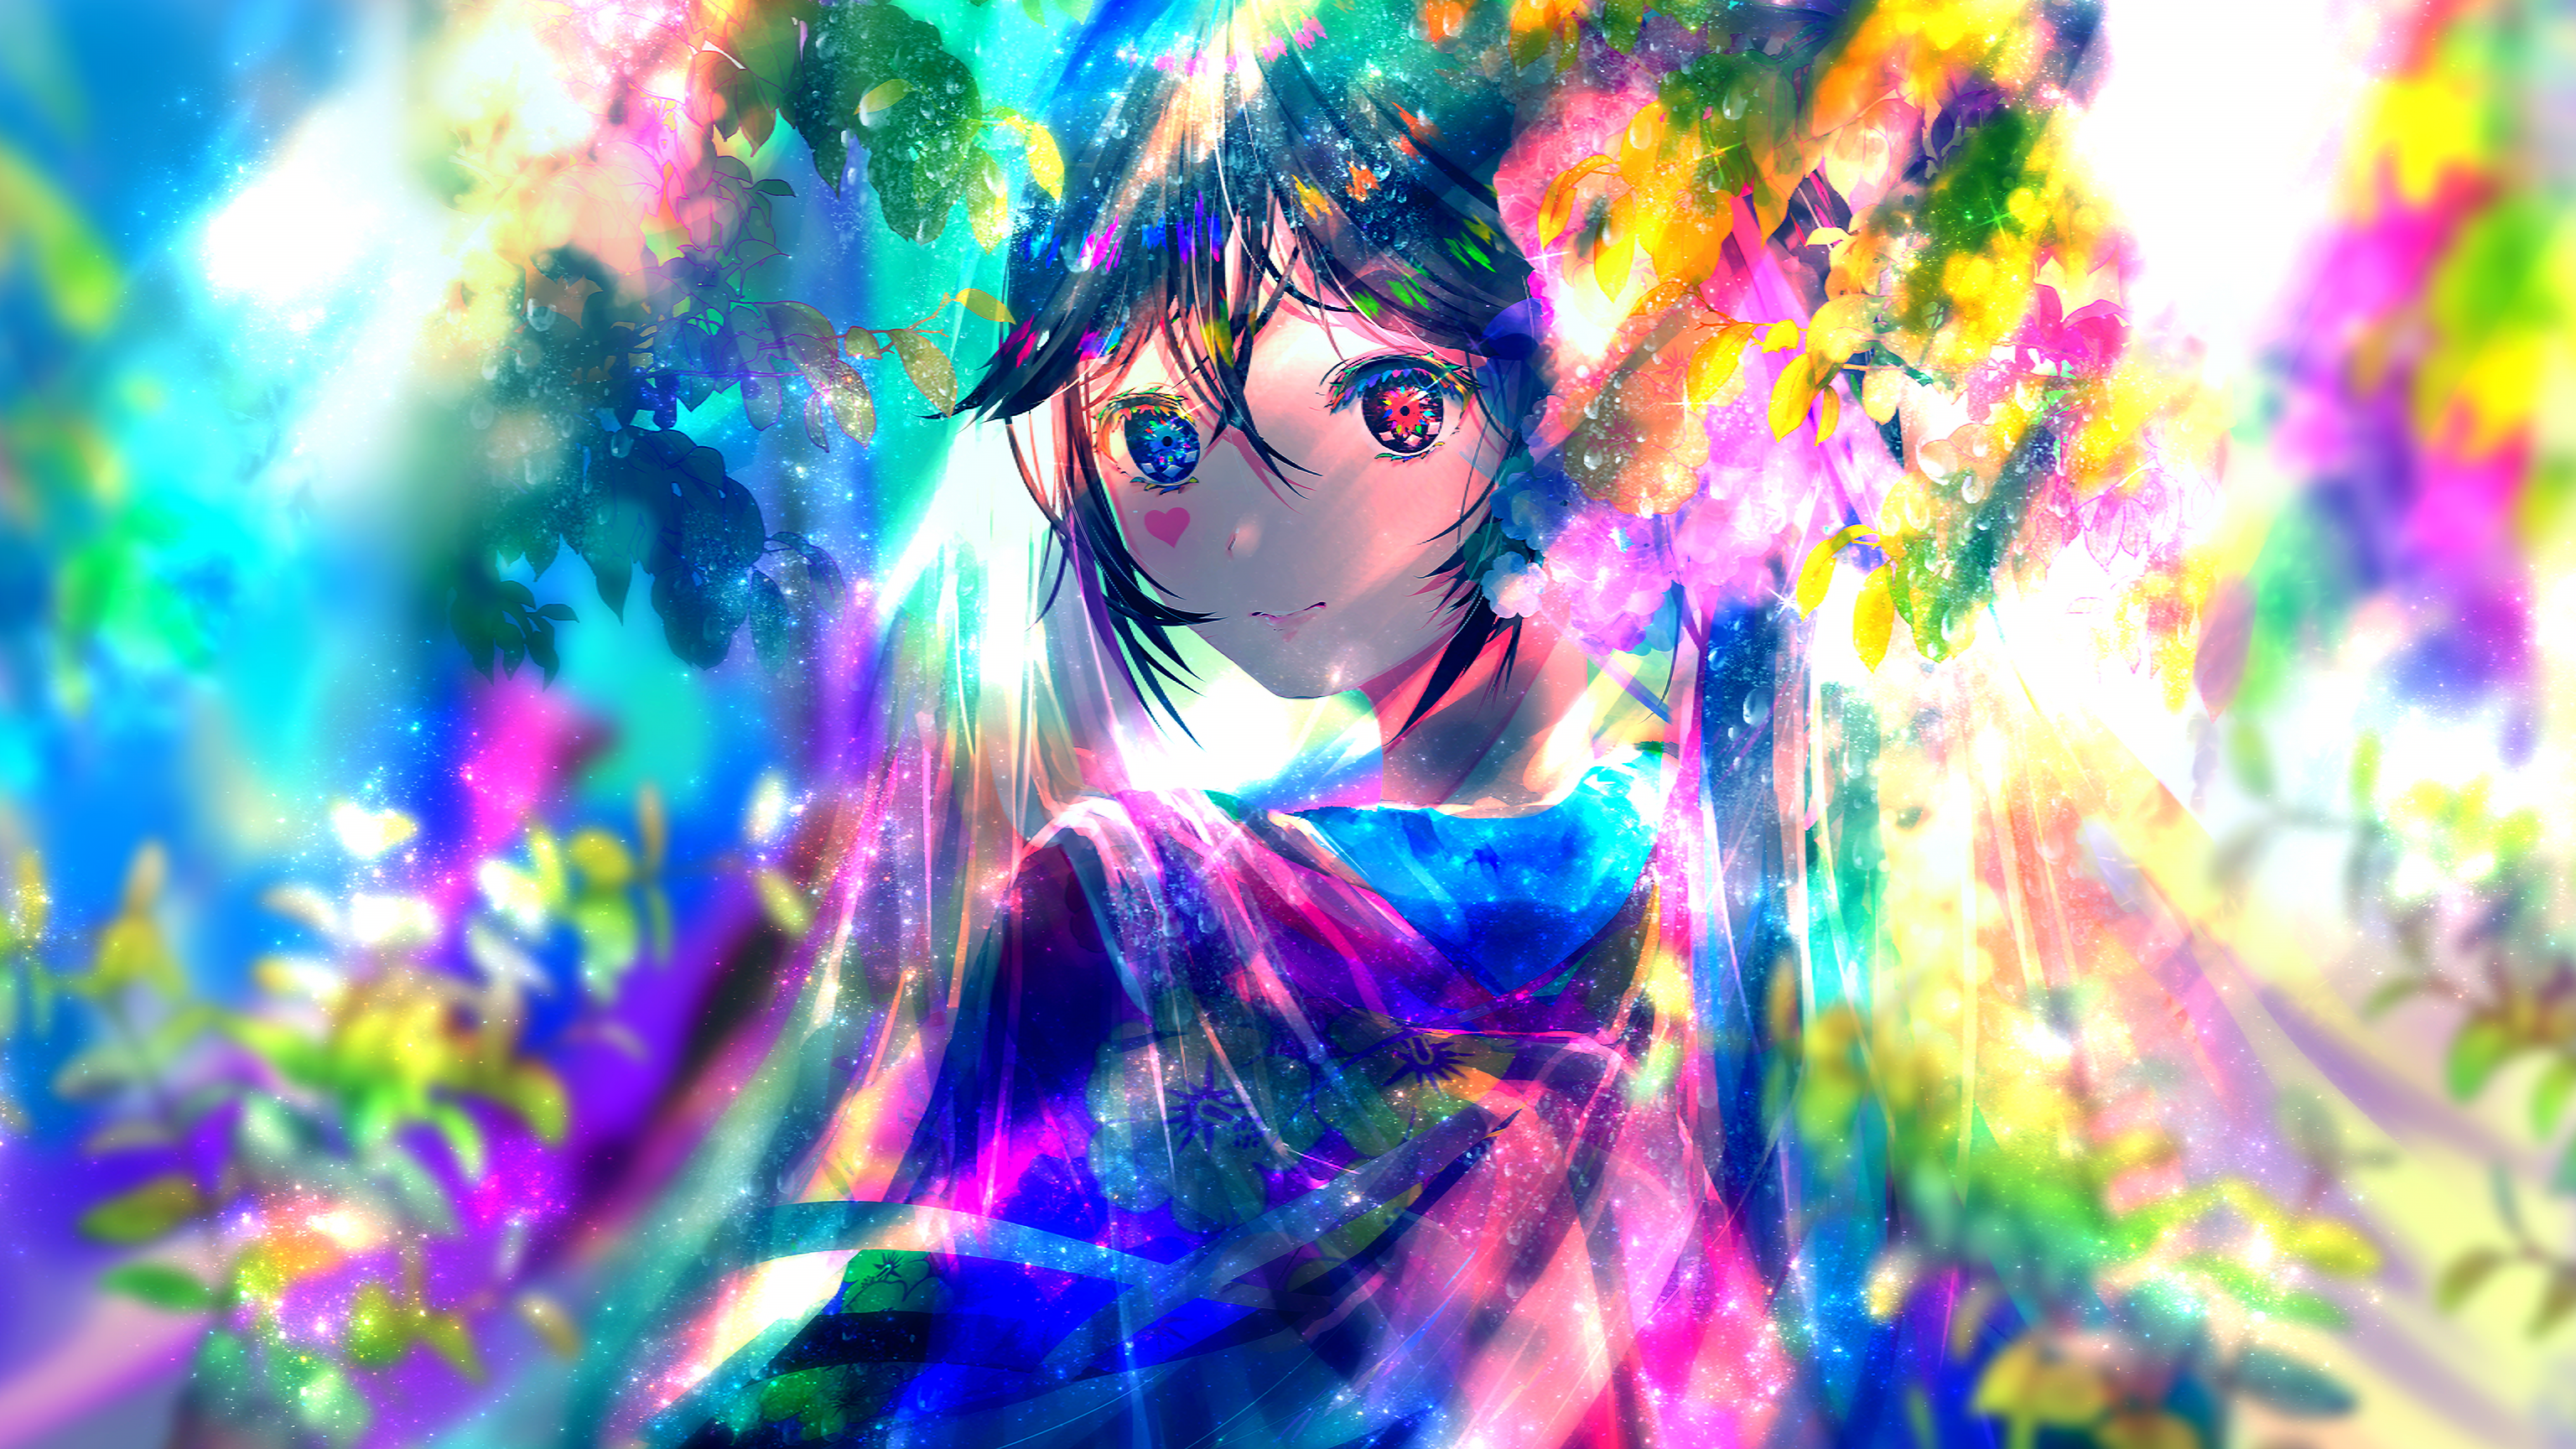 Colorful 3072x1728